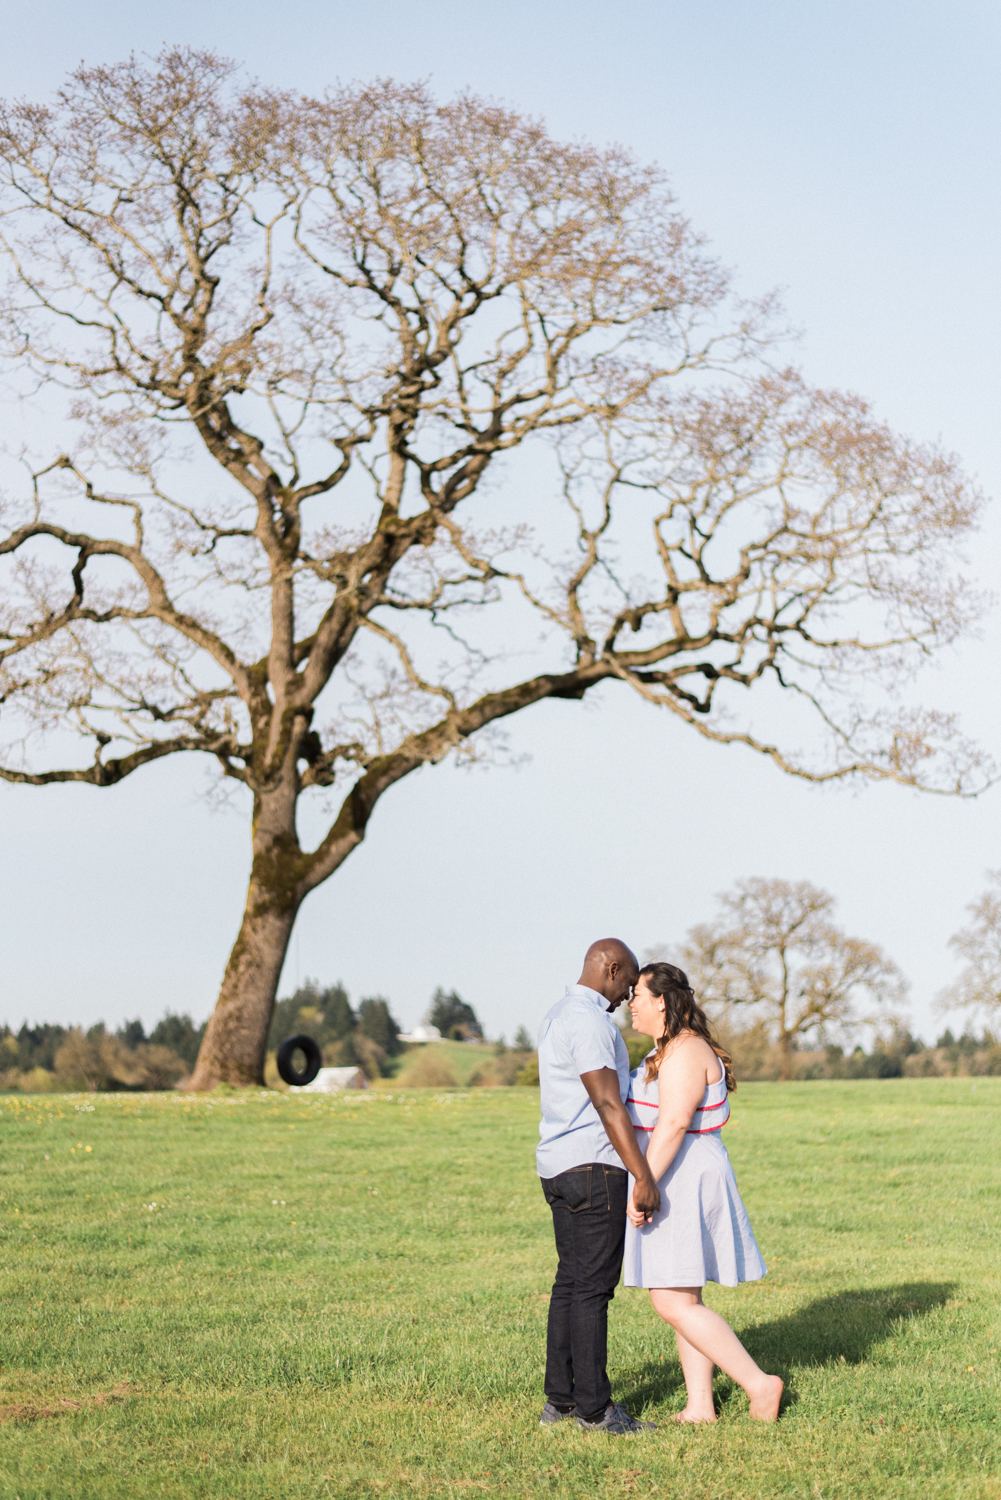 stoller-vineyards-engagement-photos-portland-oregon-shelley-marie-photo-145.jpg